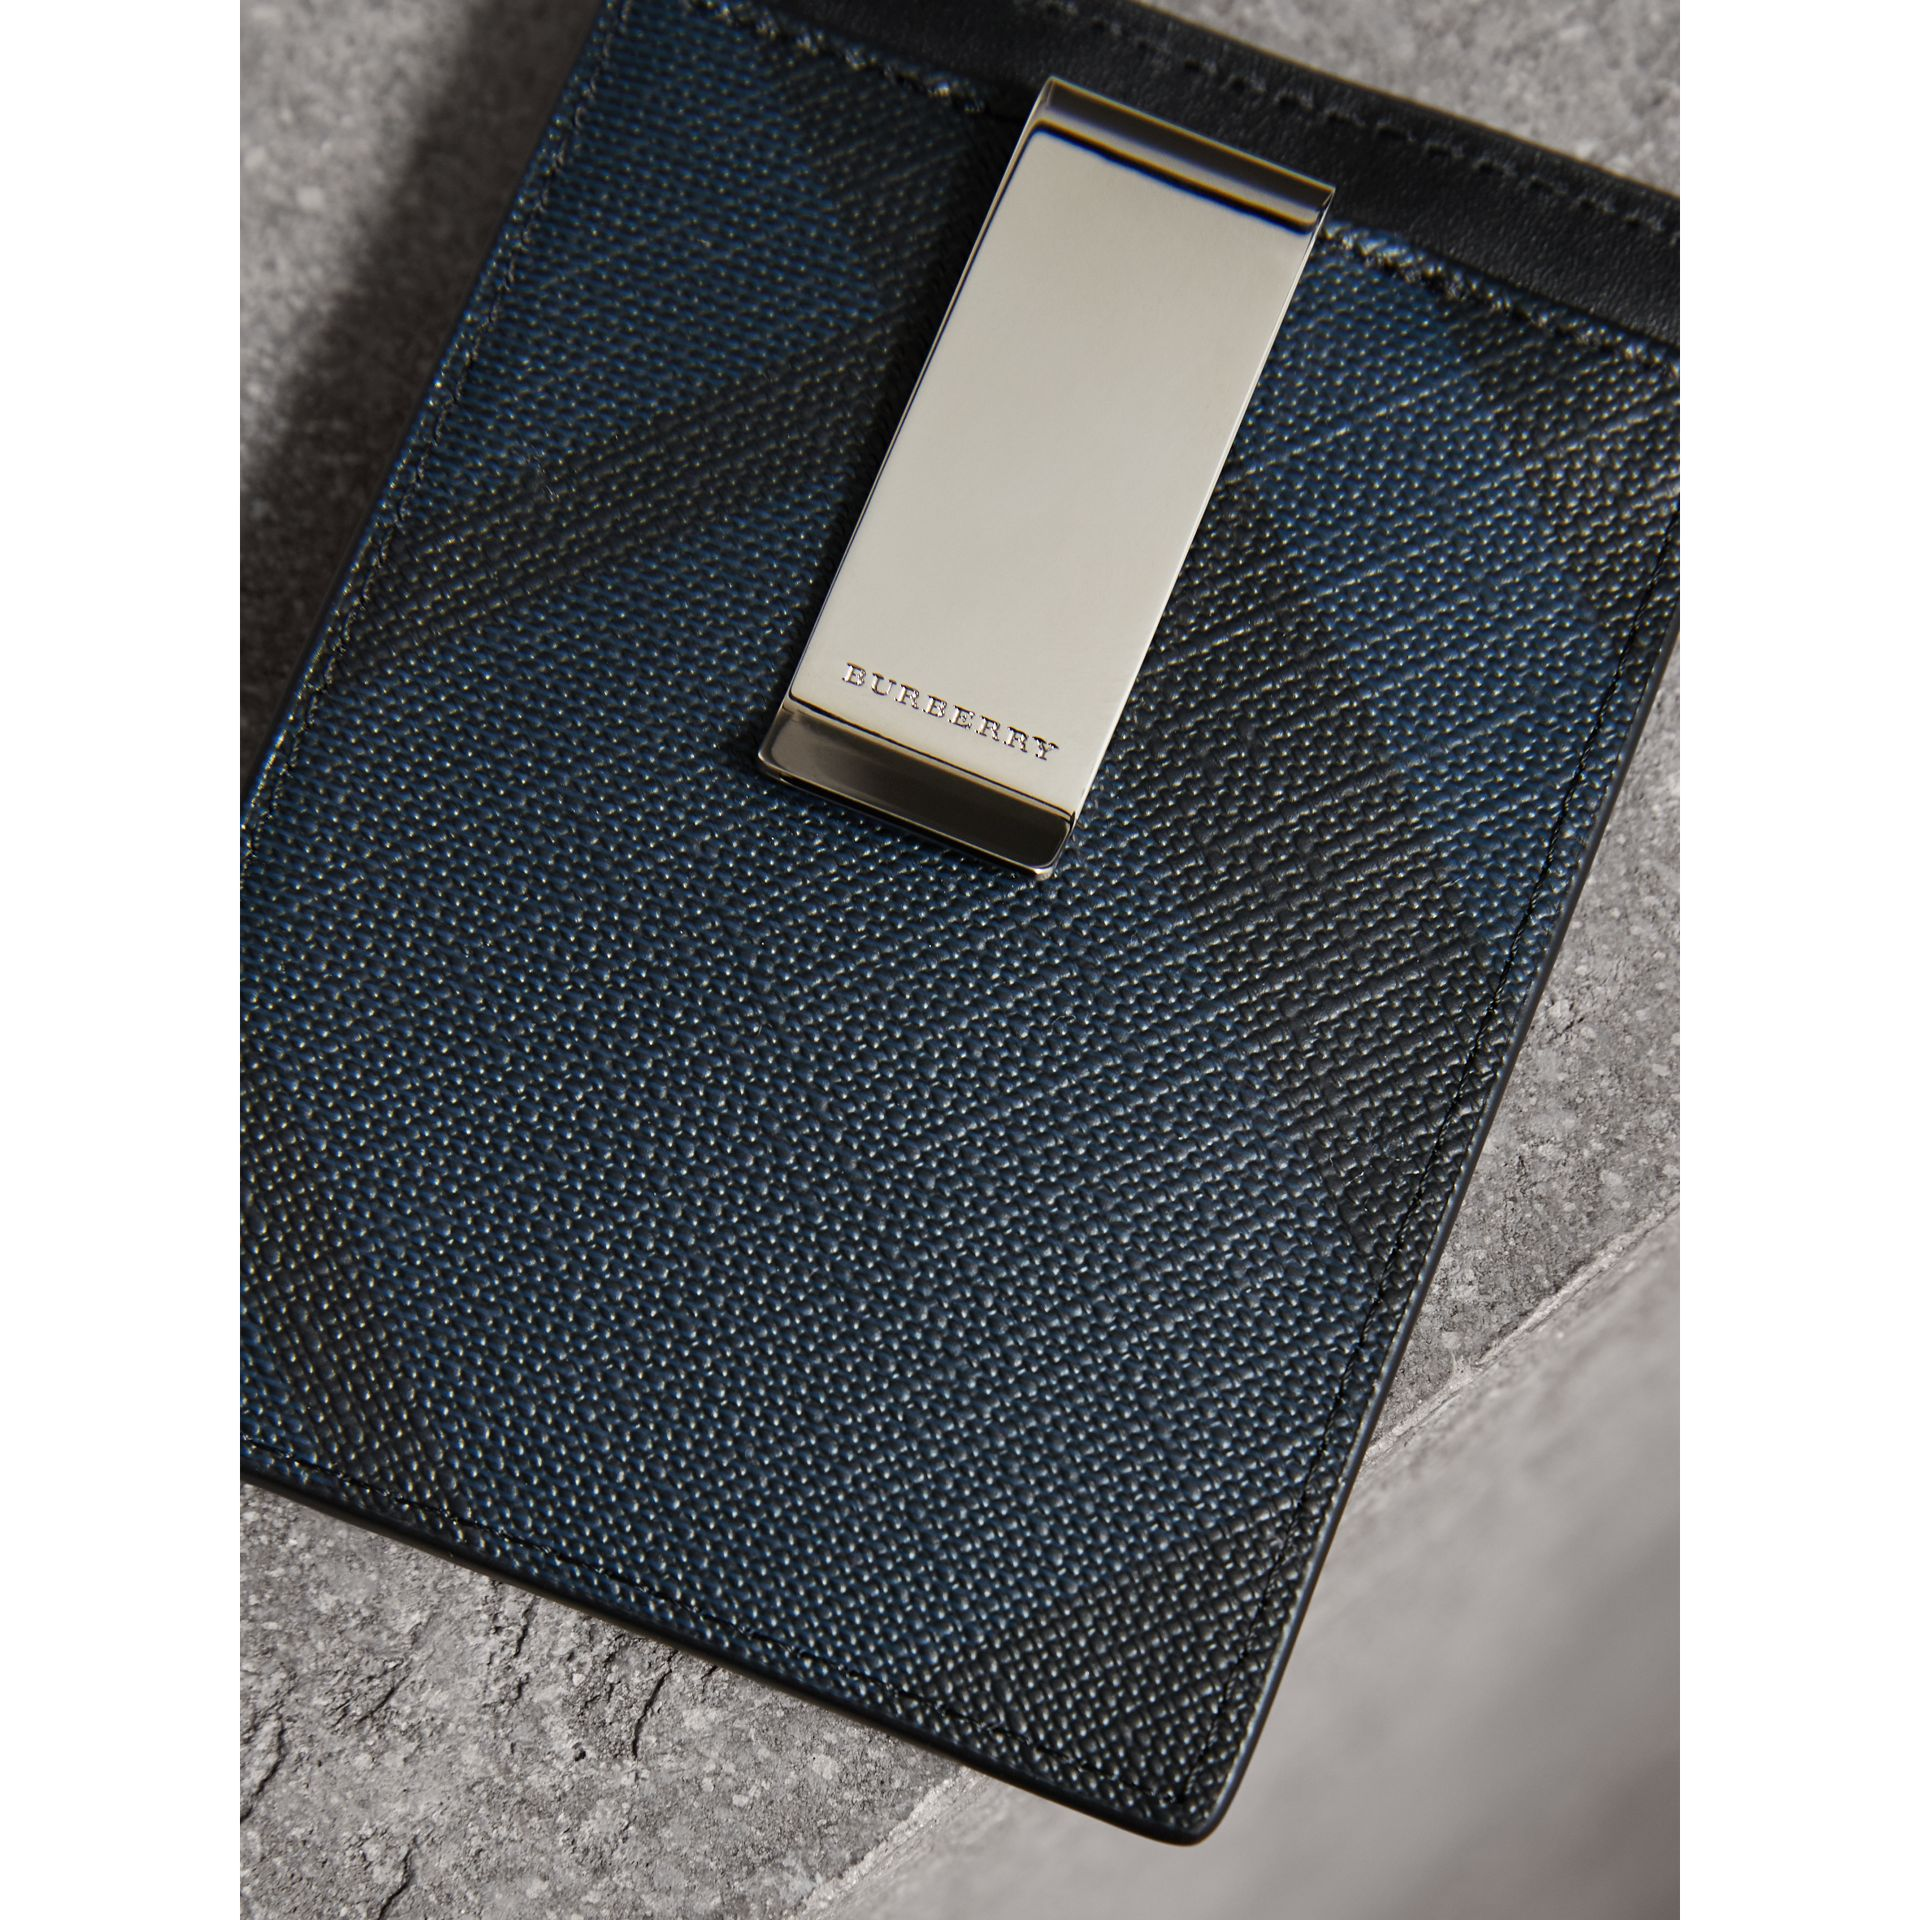 Burberry Card Holder Money Clip